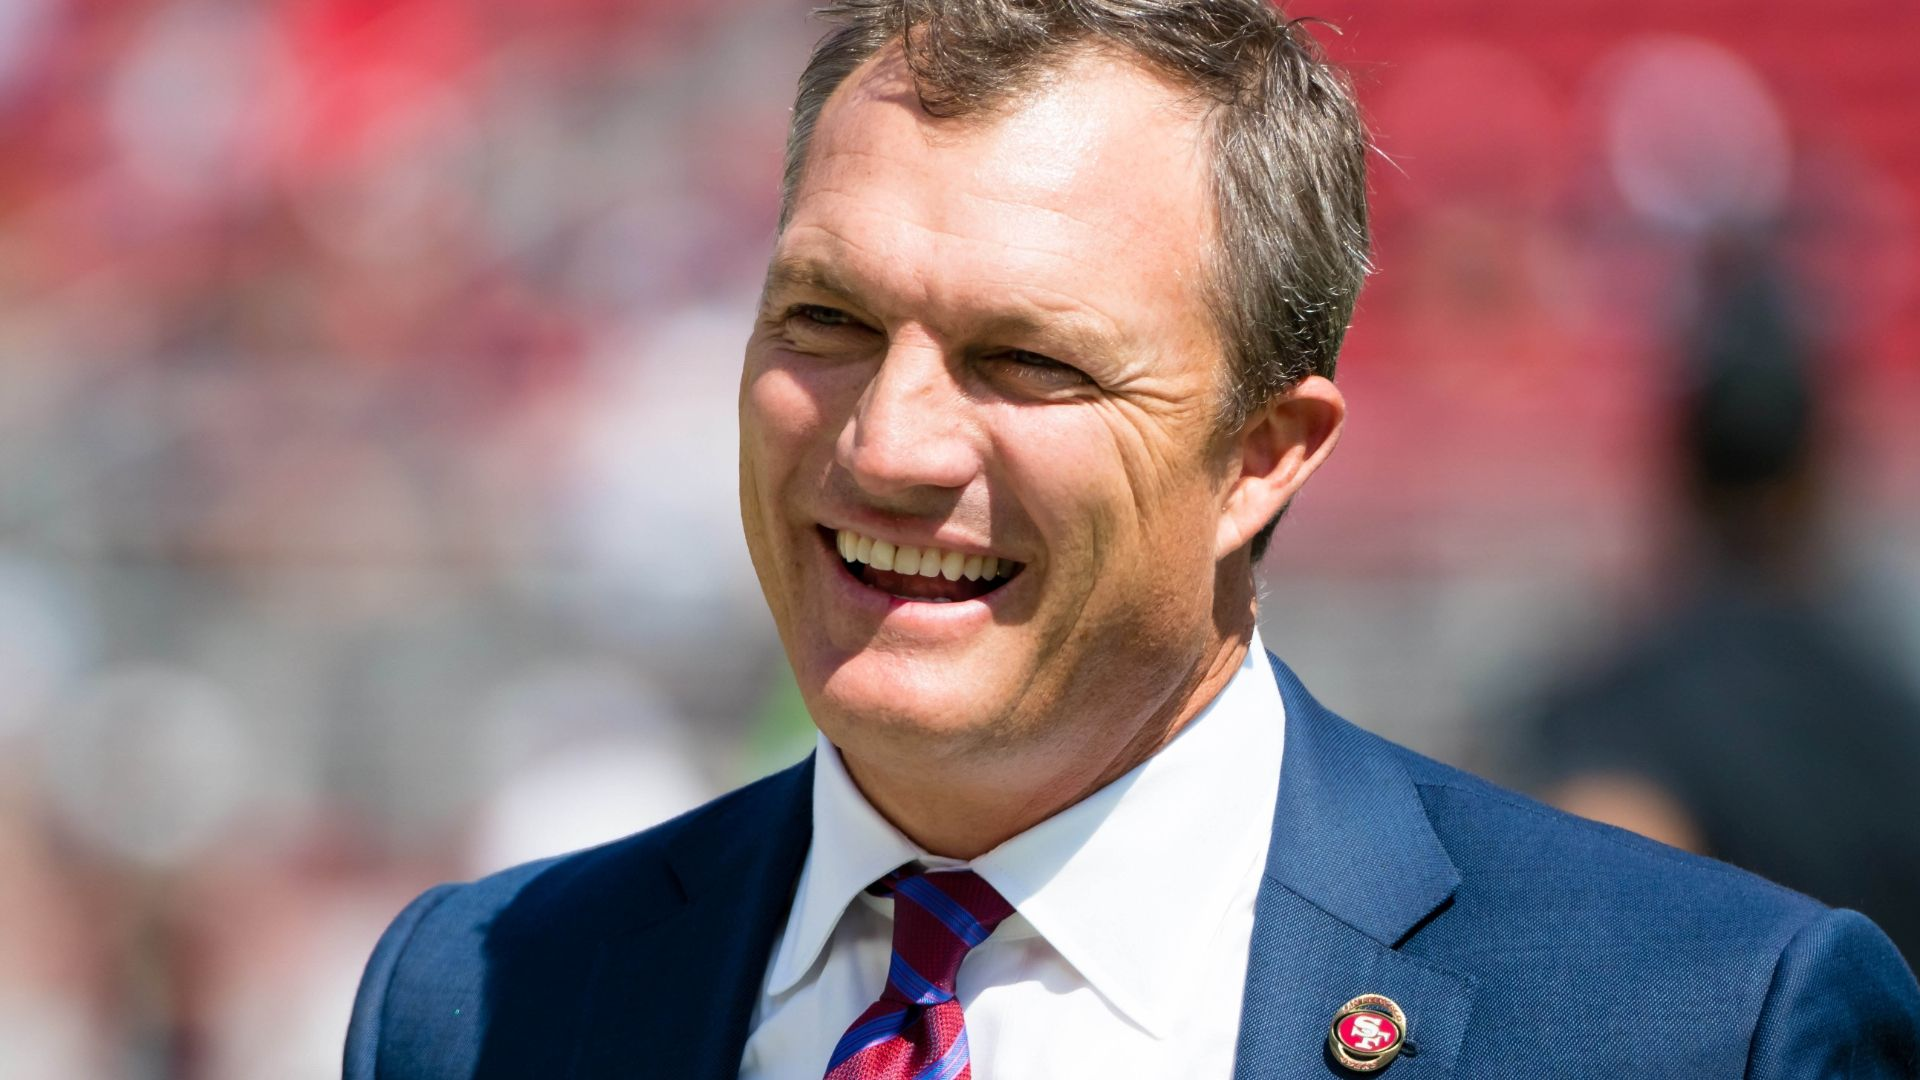 Gruden praises John Lynch's love for football